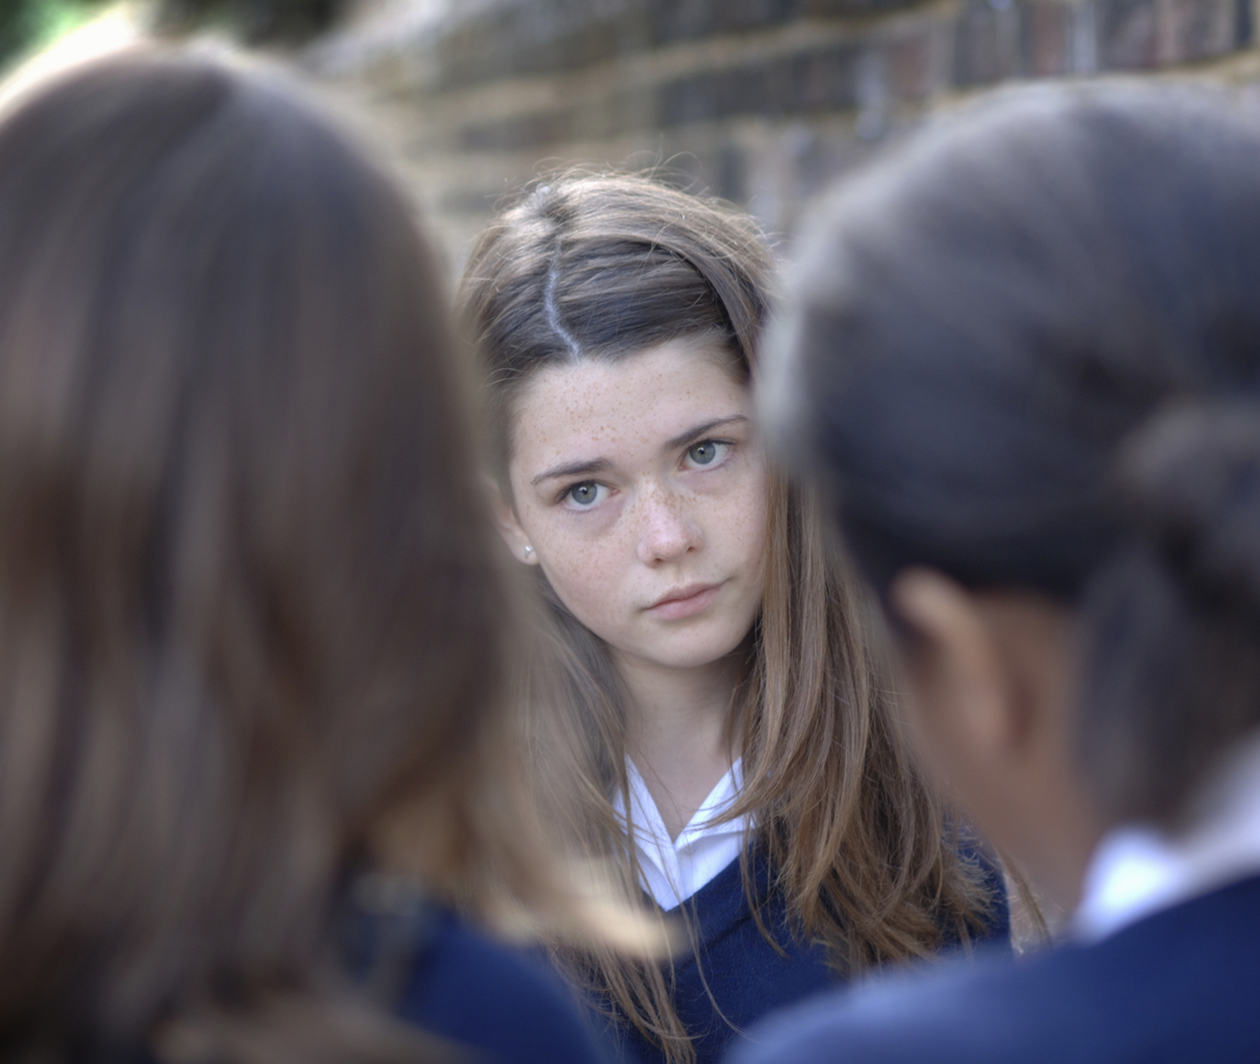 Bullying in Schools: How Should Teachers Respond?